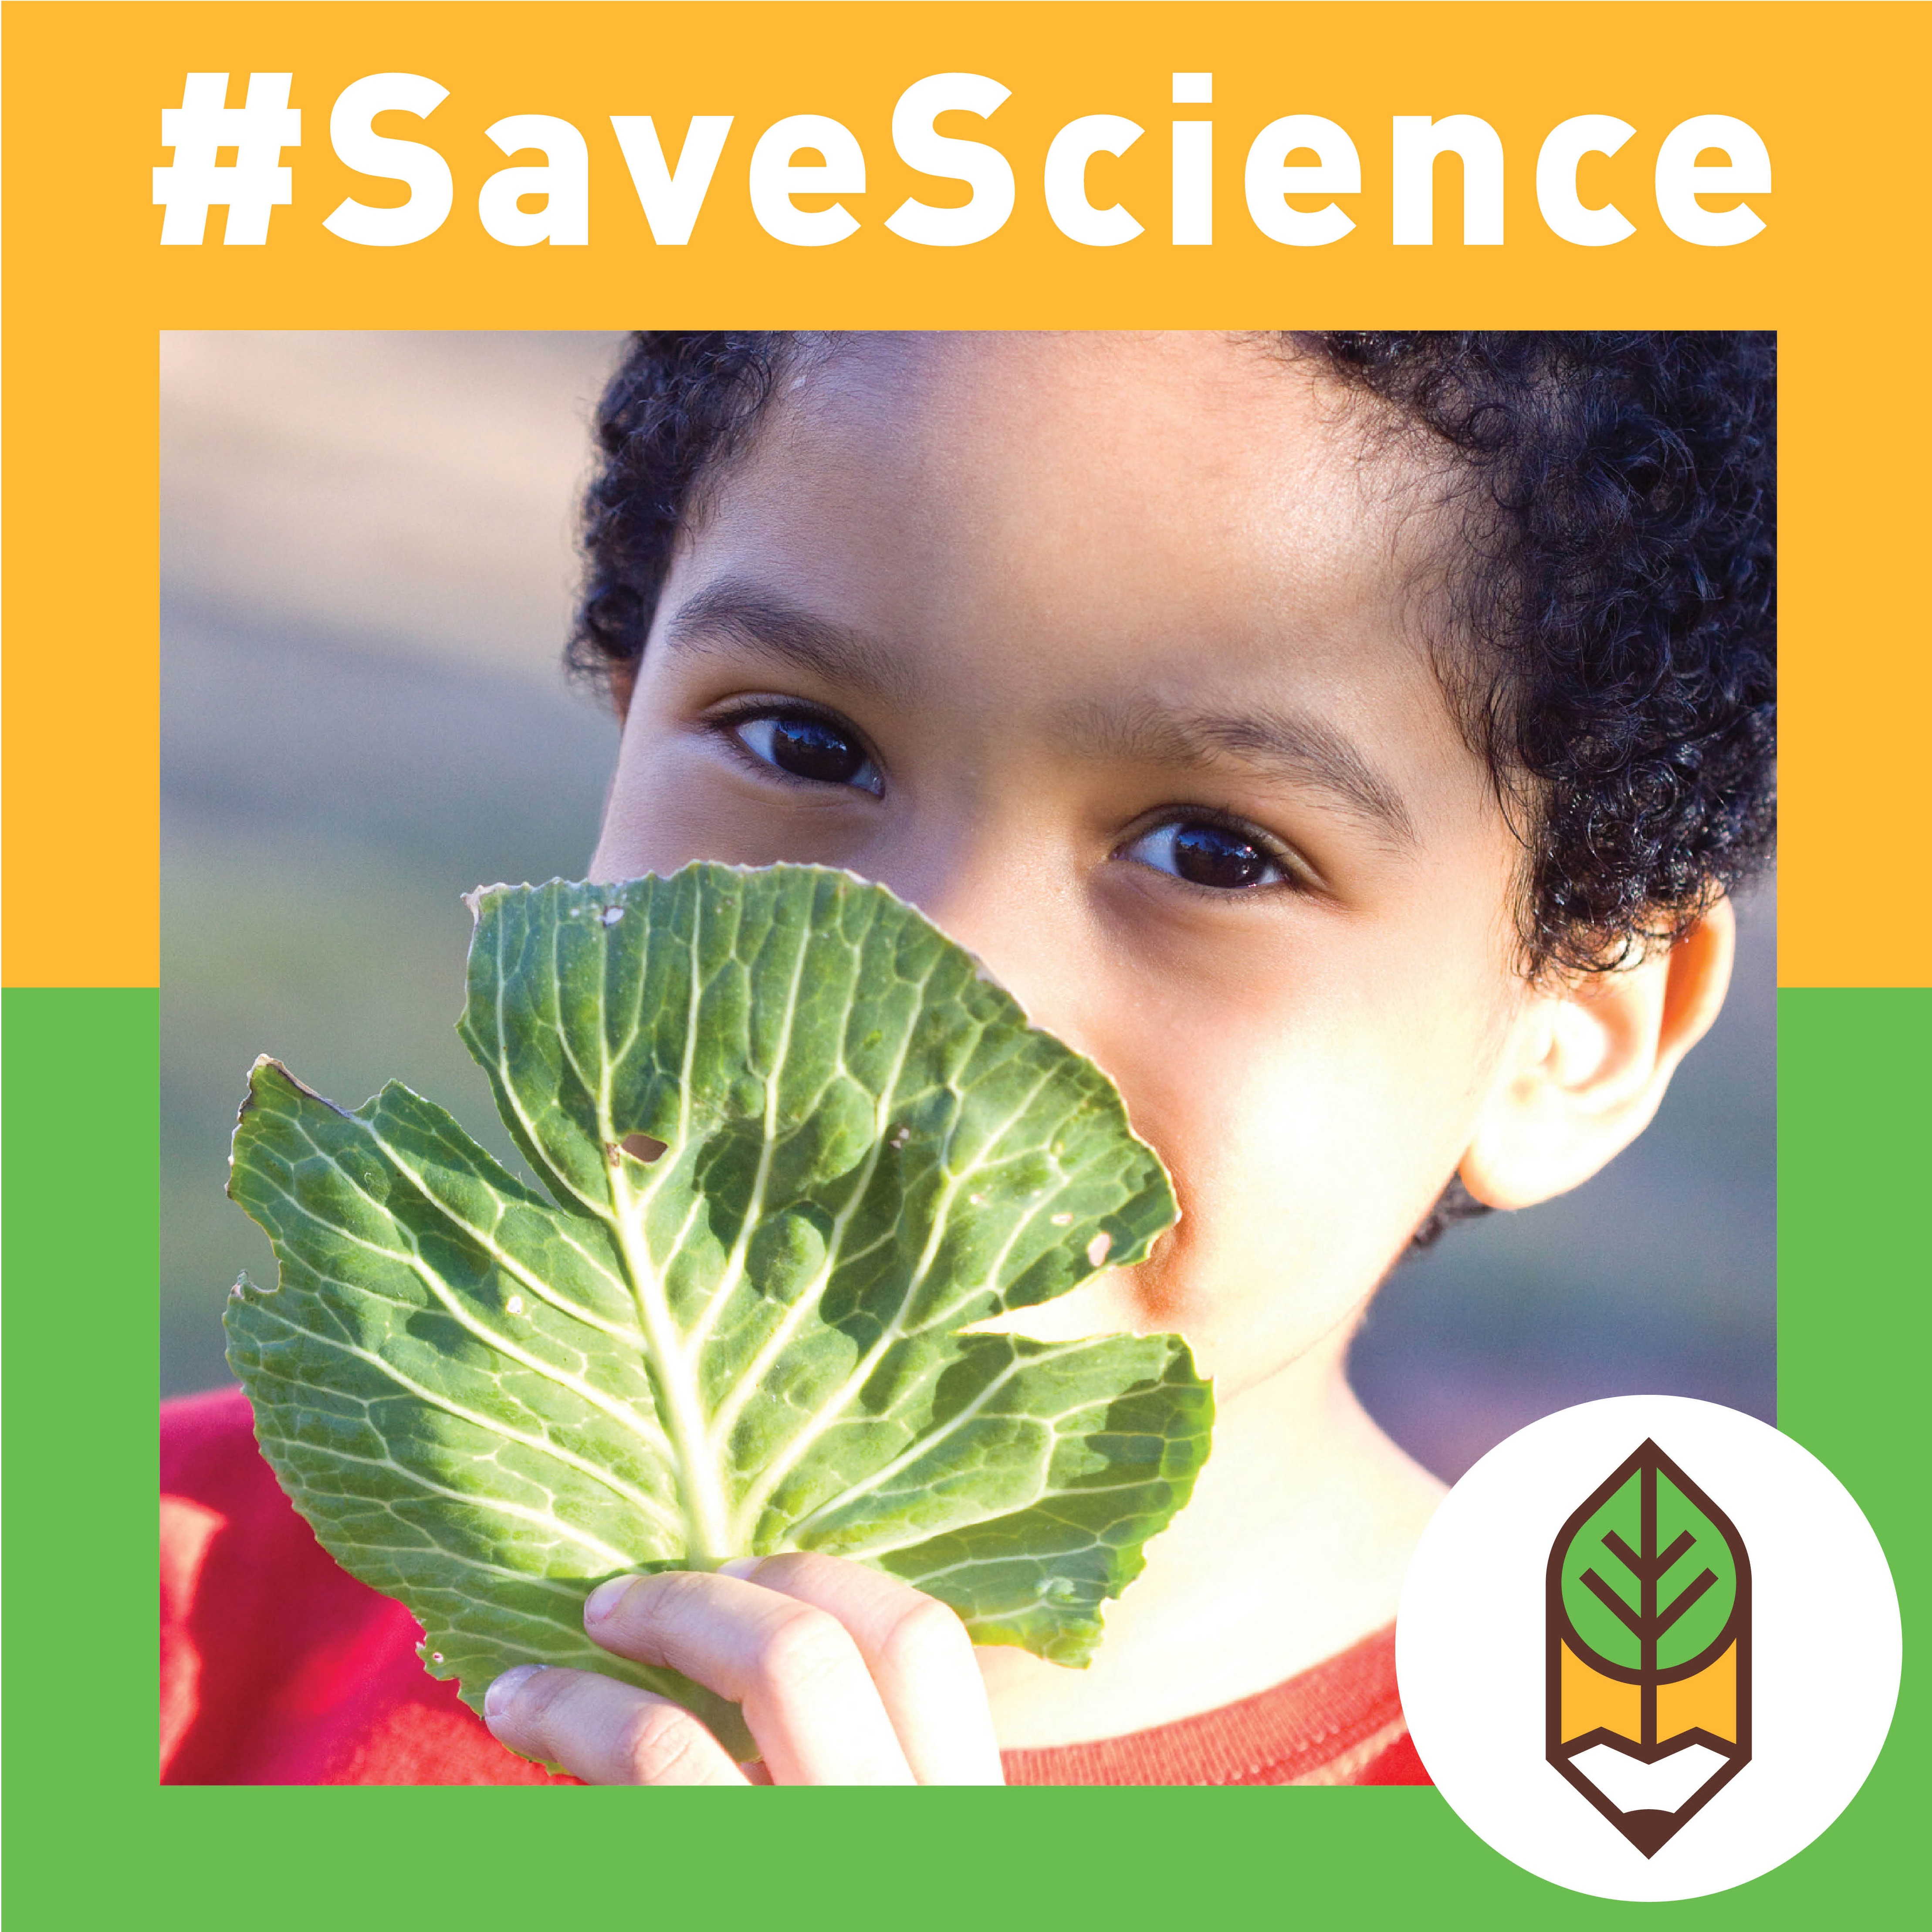 savescience_kids_23